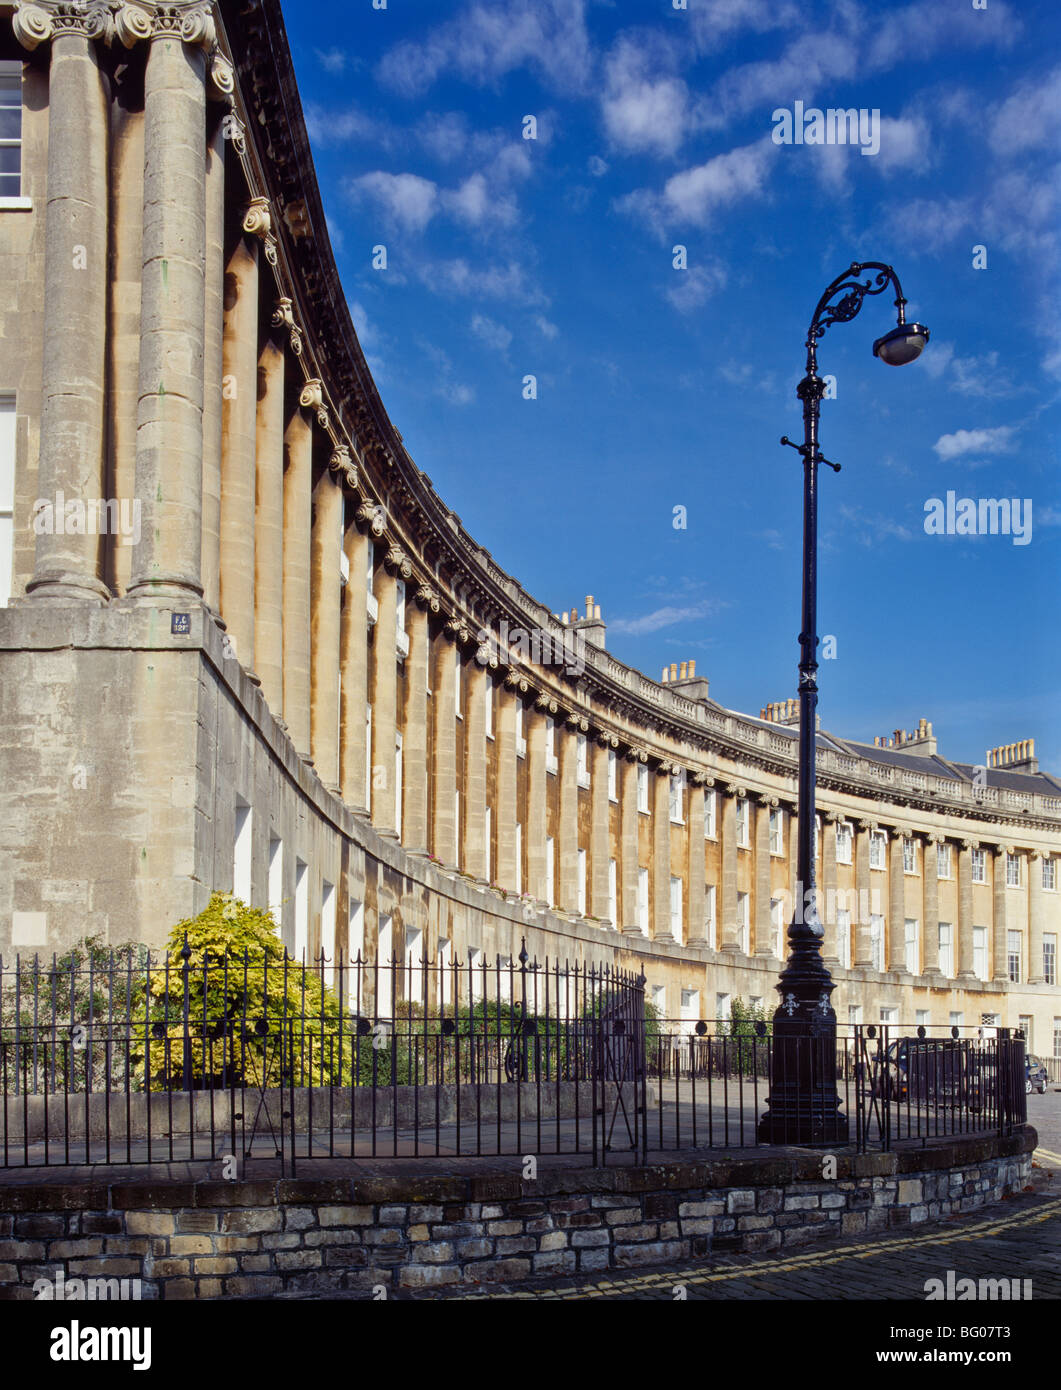 The Royal Crescent designed by John Wood the Younger and built 1767-74 Bath, Avon, England, United Kingdom - Stock Image